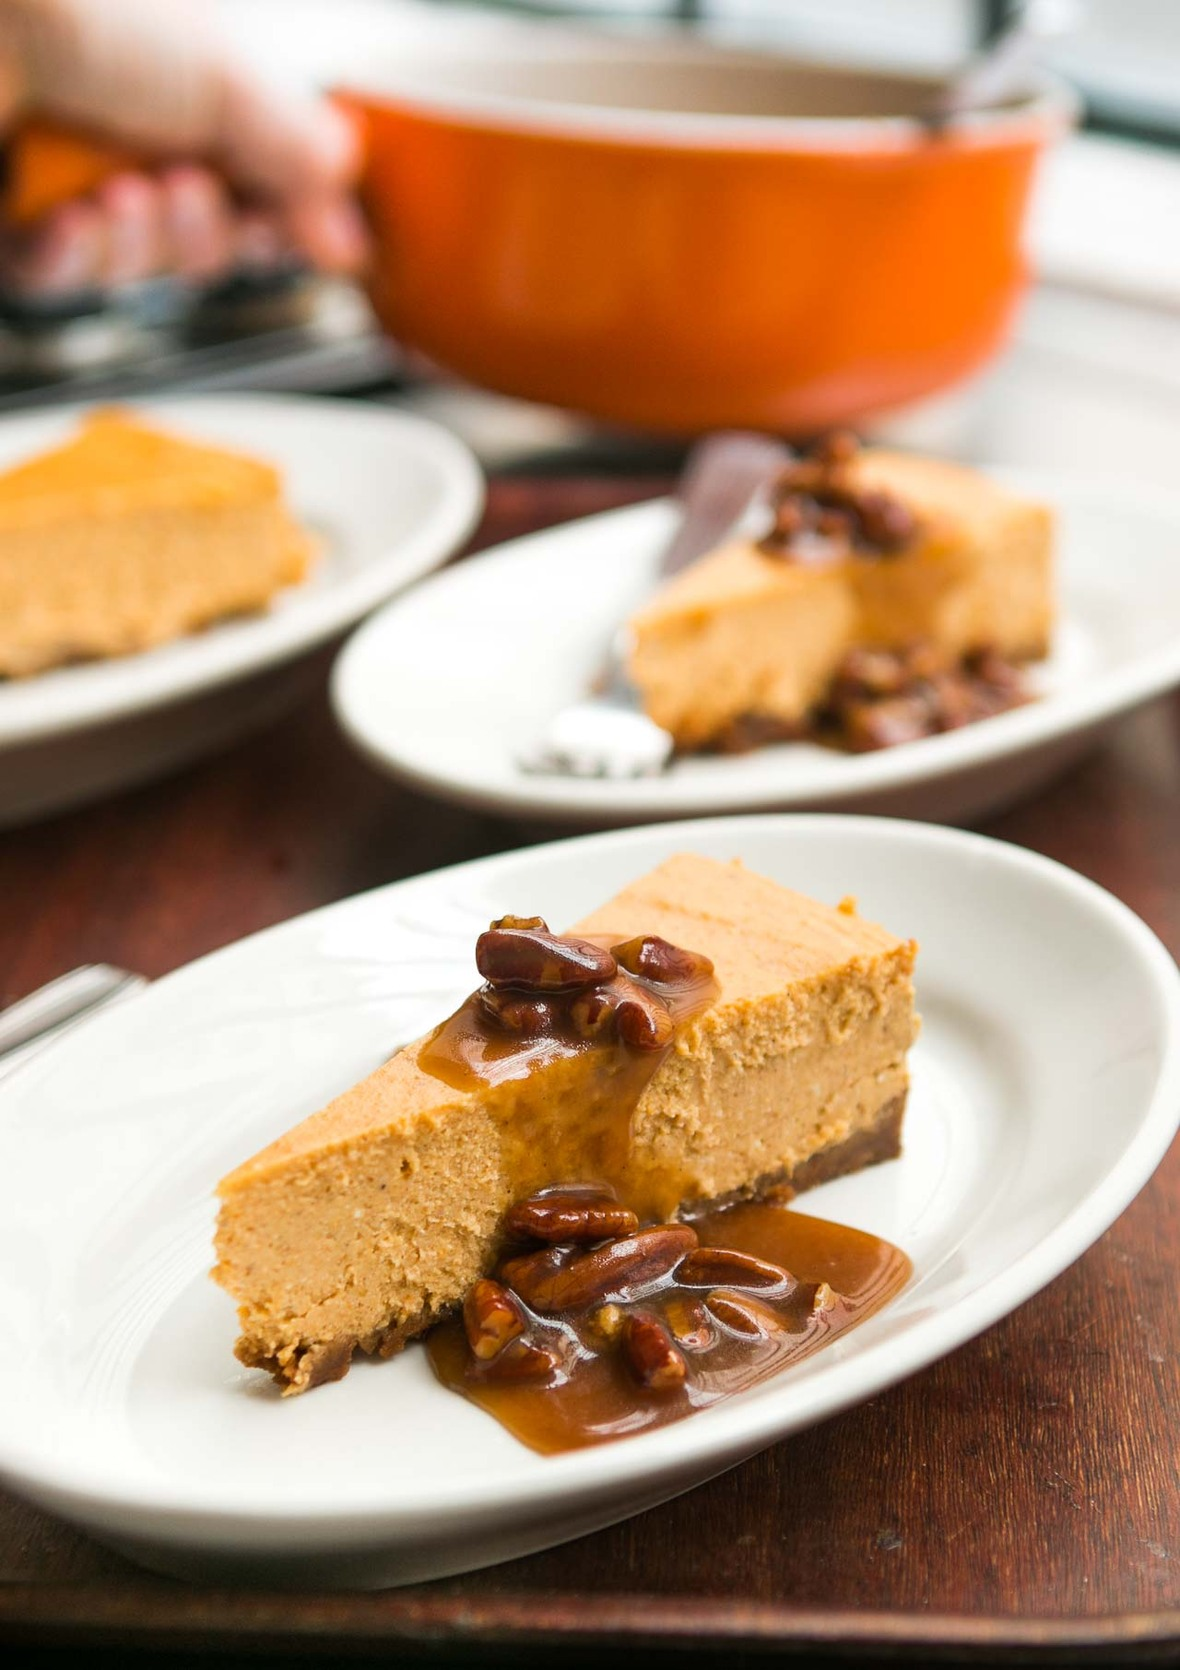 Pumpkin cheesecake recipe with toffee pecan sauce -5